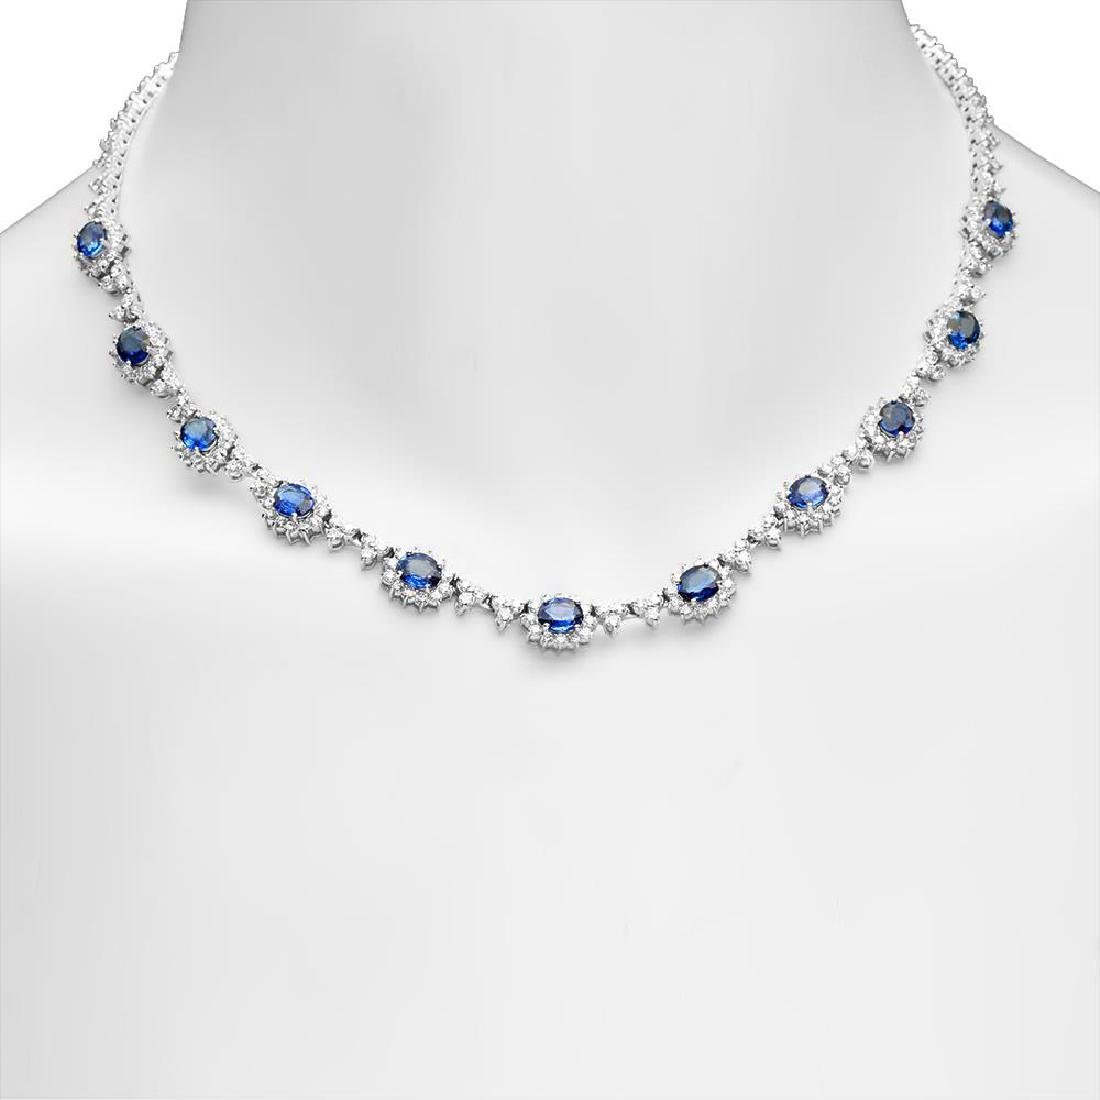 14K Gold 7.88ct Sapphire 8.79cts Diamond Necklace